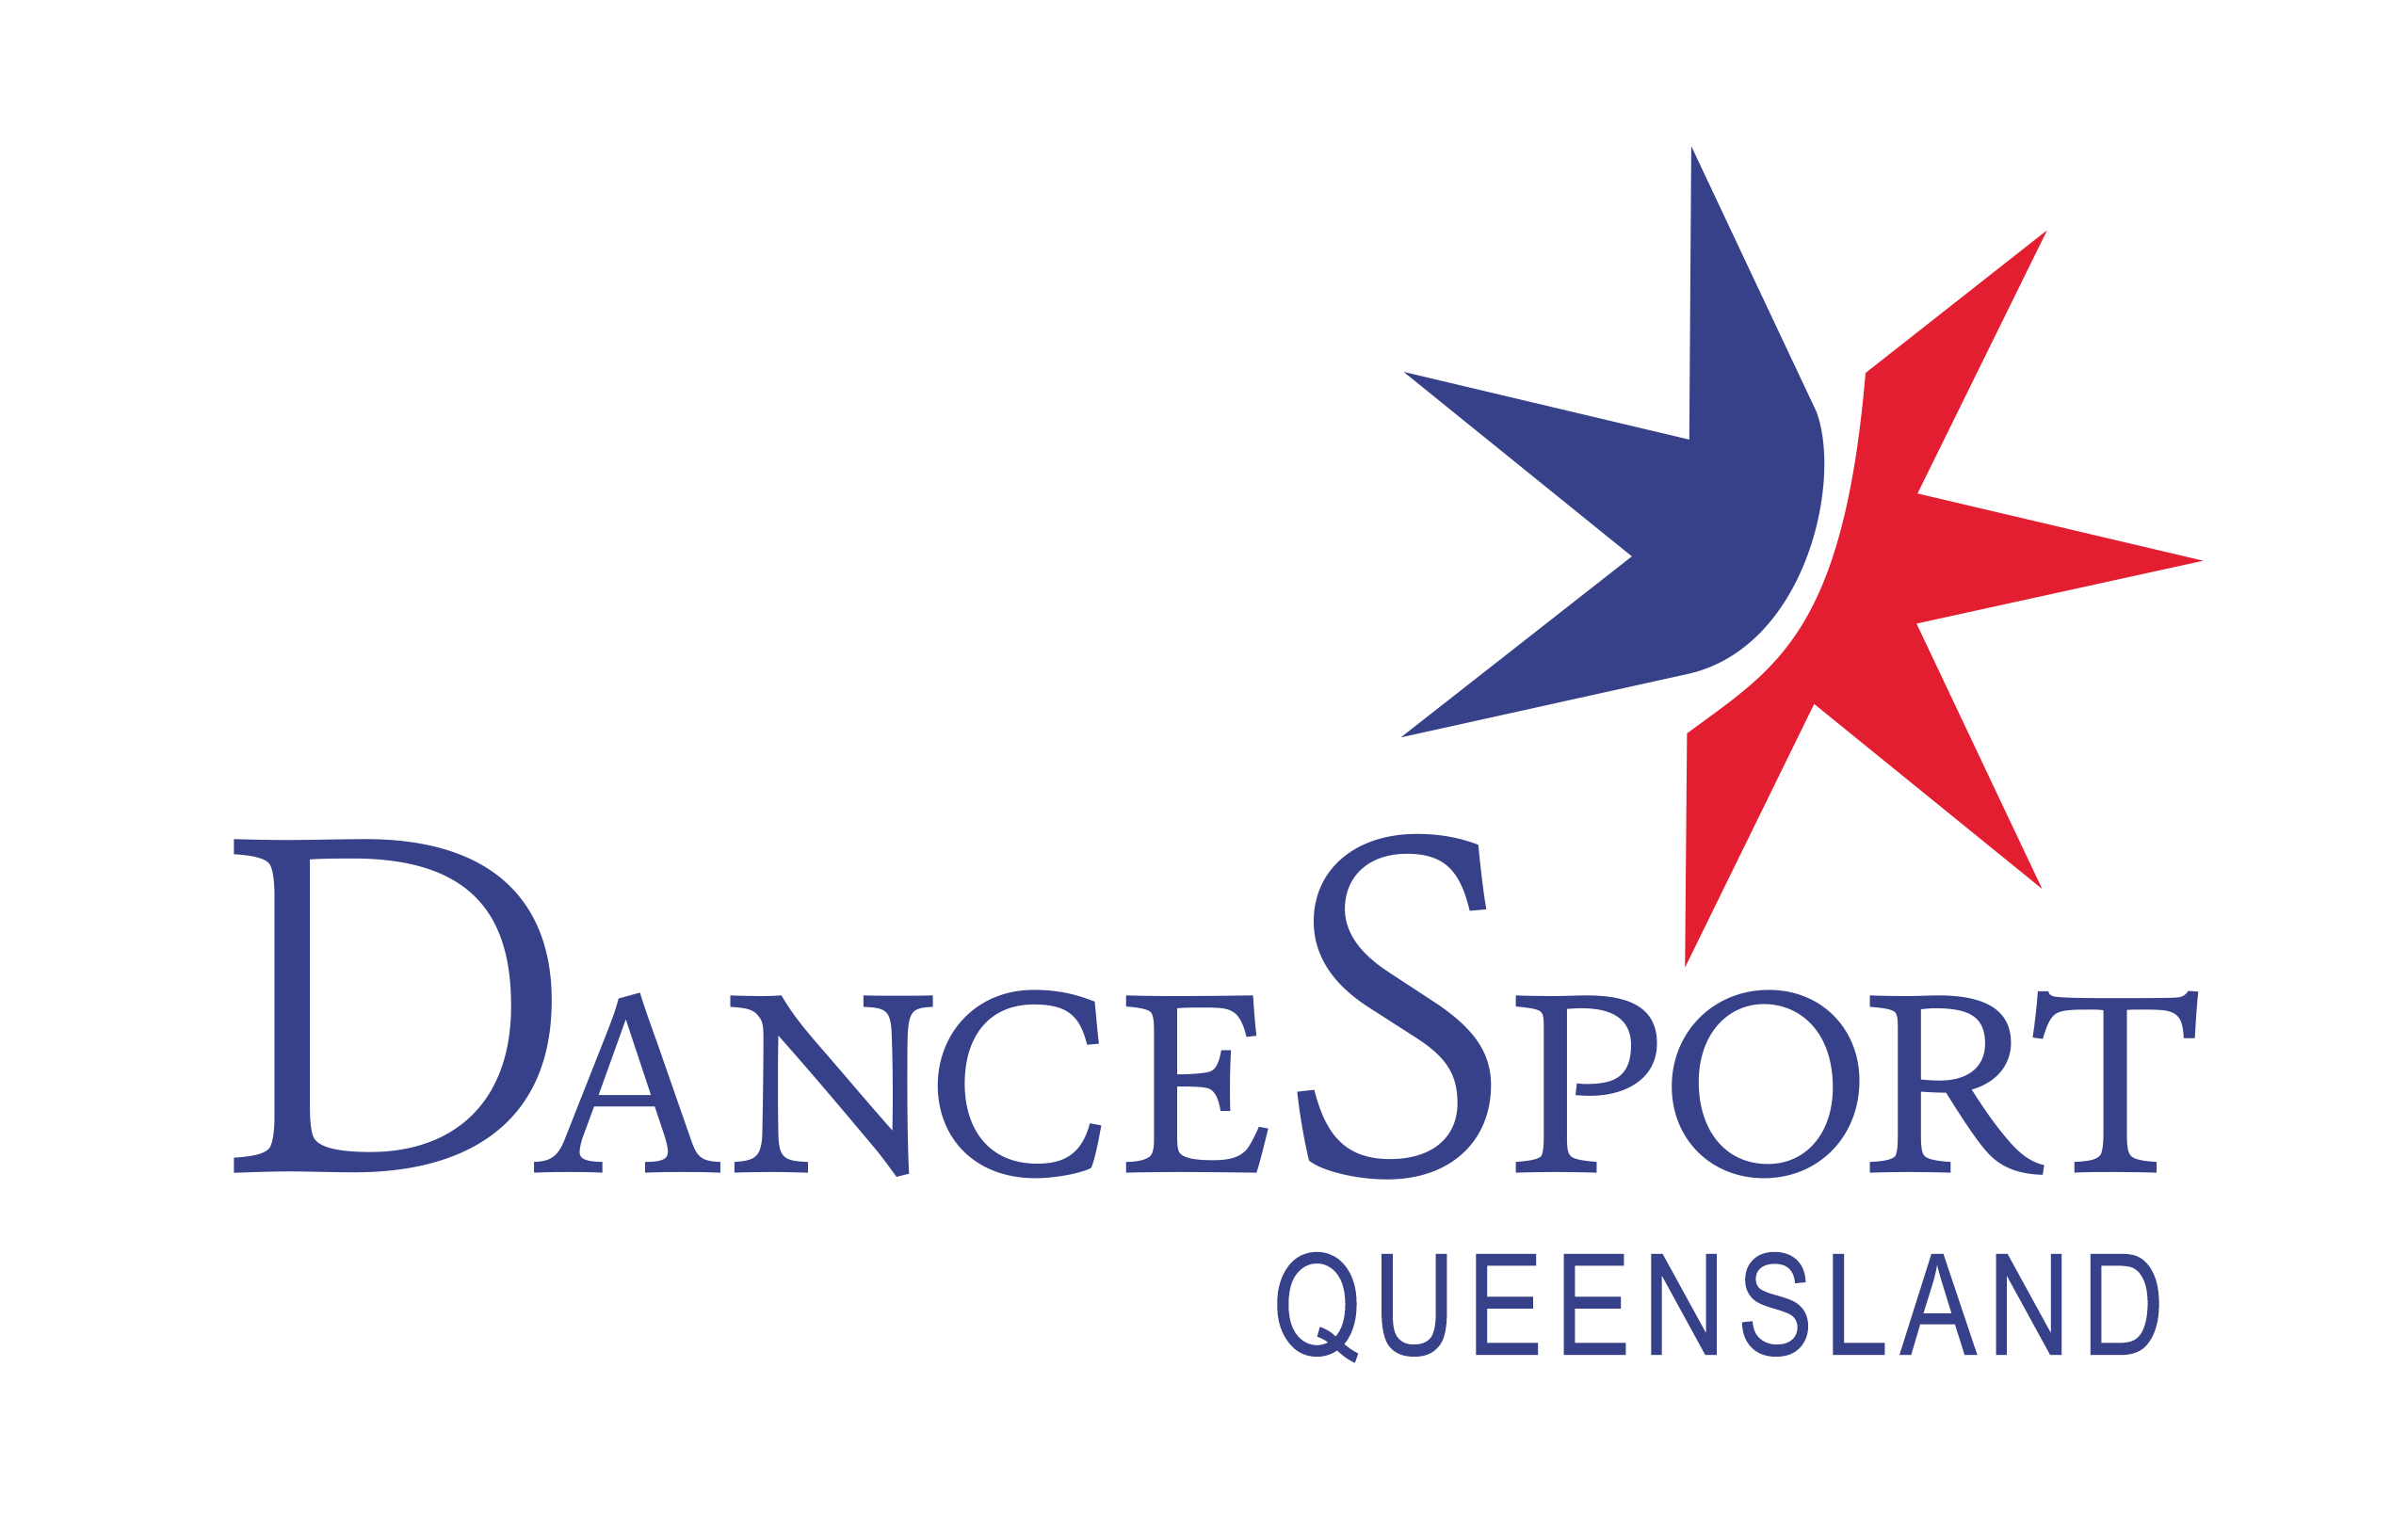 DanceSport Queensland